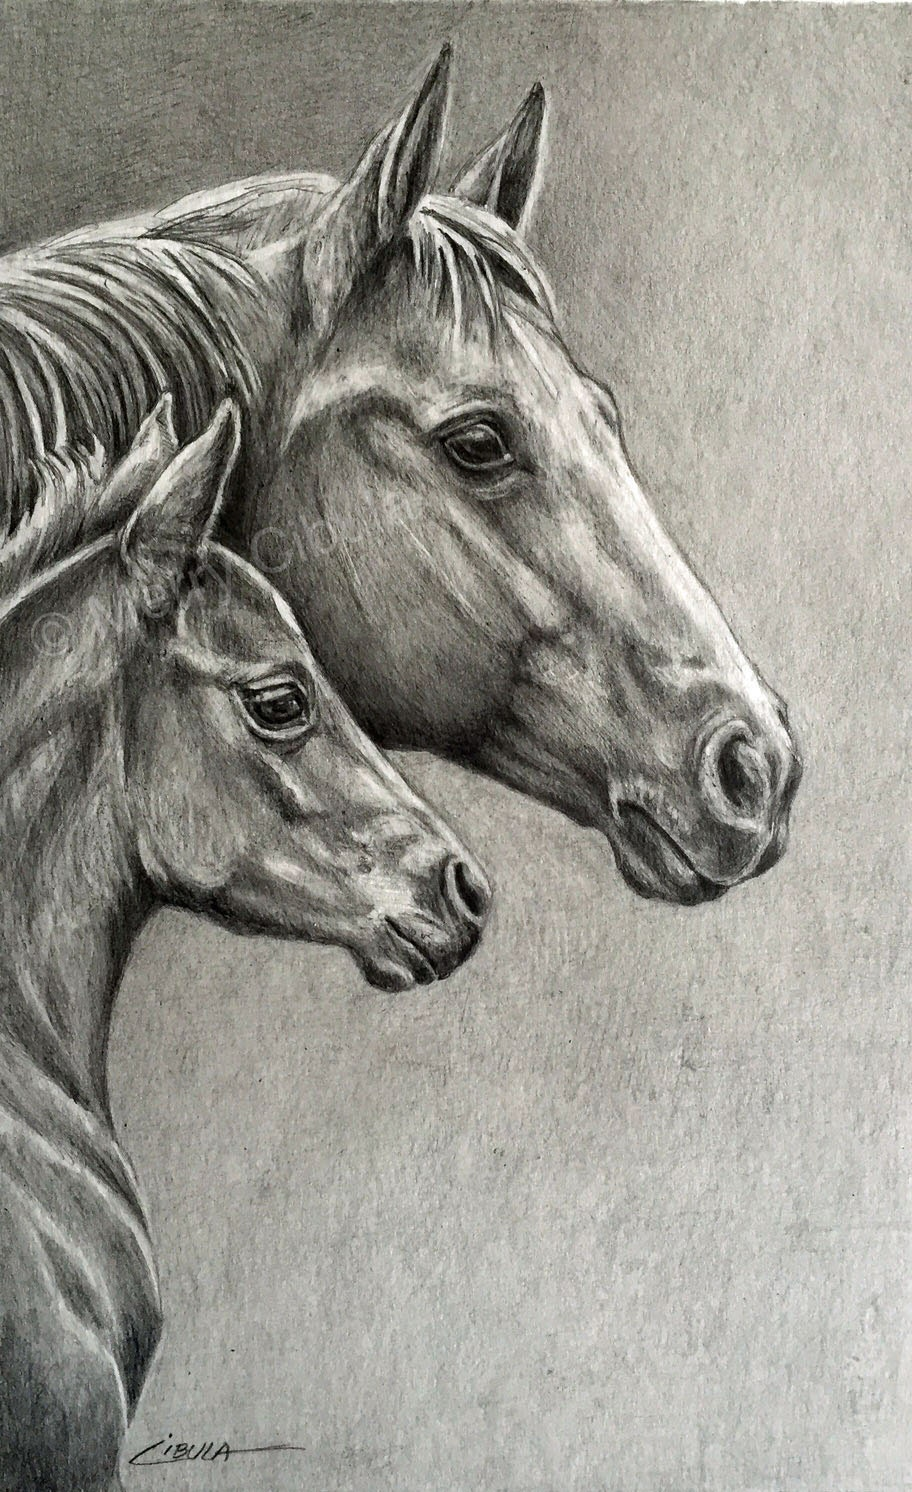 #01 (Part 1) How to draw a realistic horse - Digital Art ...  |Horse Art Drawings